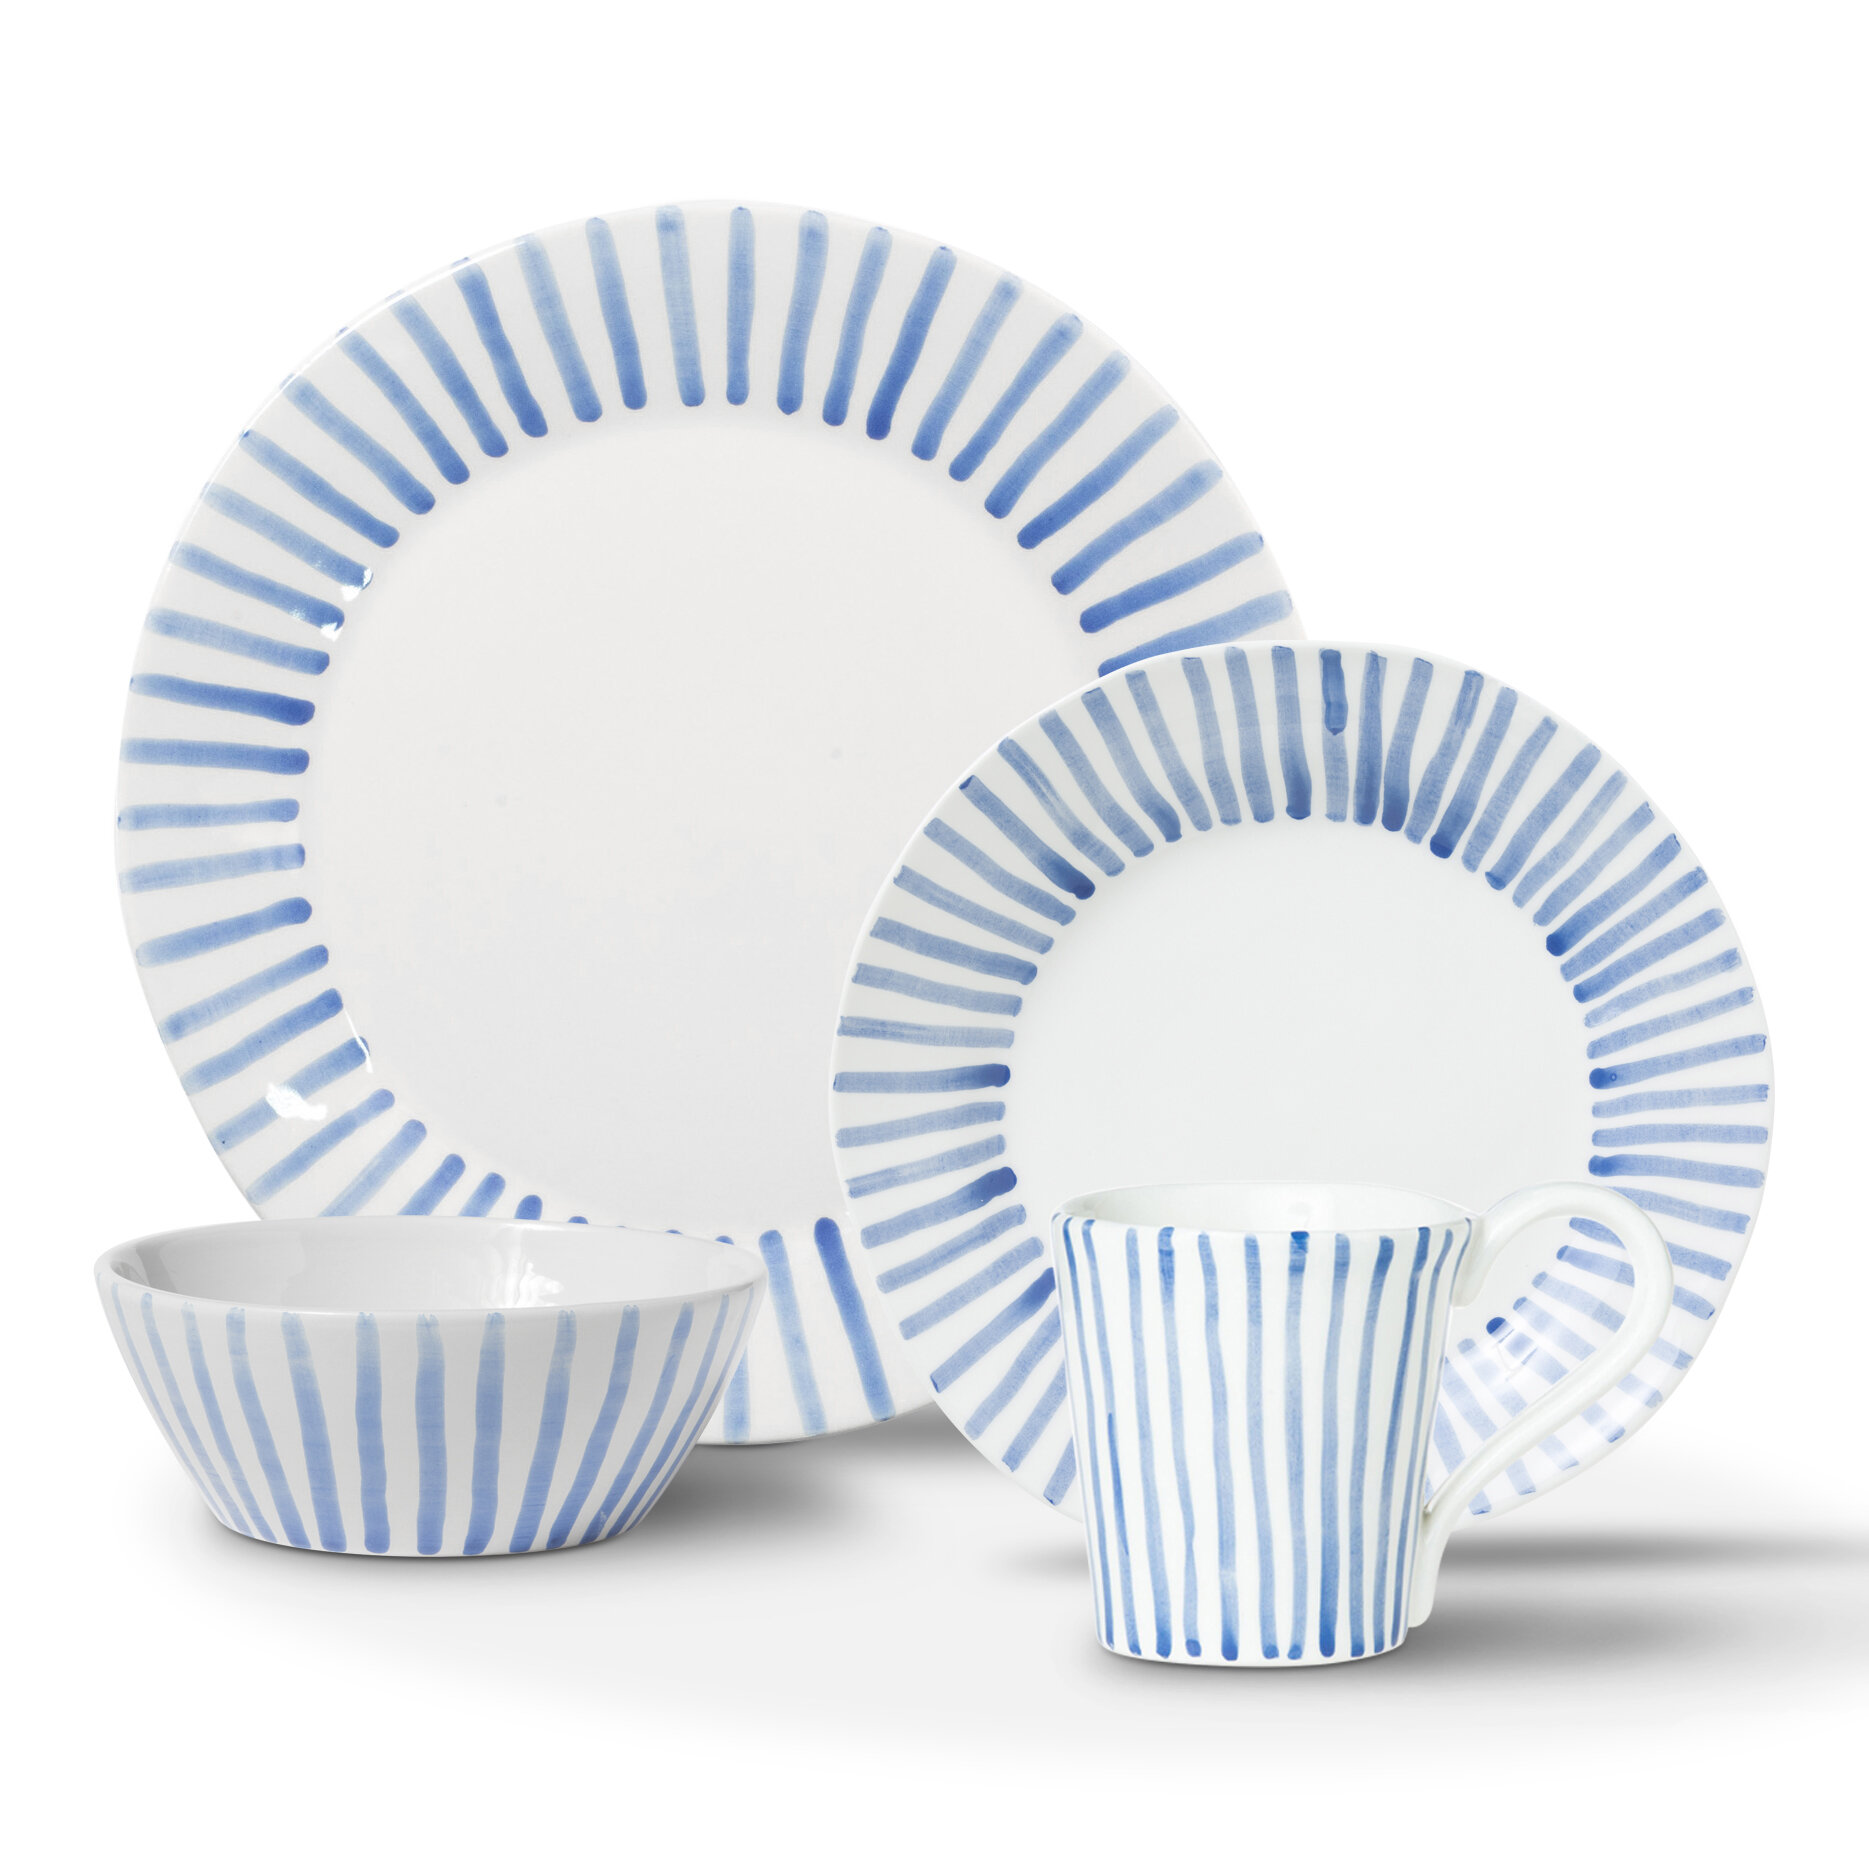 Vietri Viva Santorini 4 Piece Place Setting Set Service For 1 Reviews Wayfair